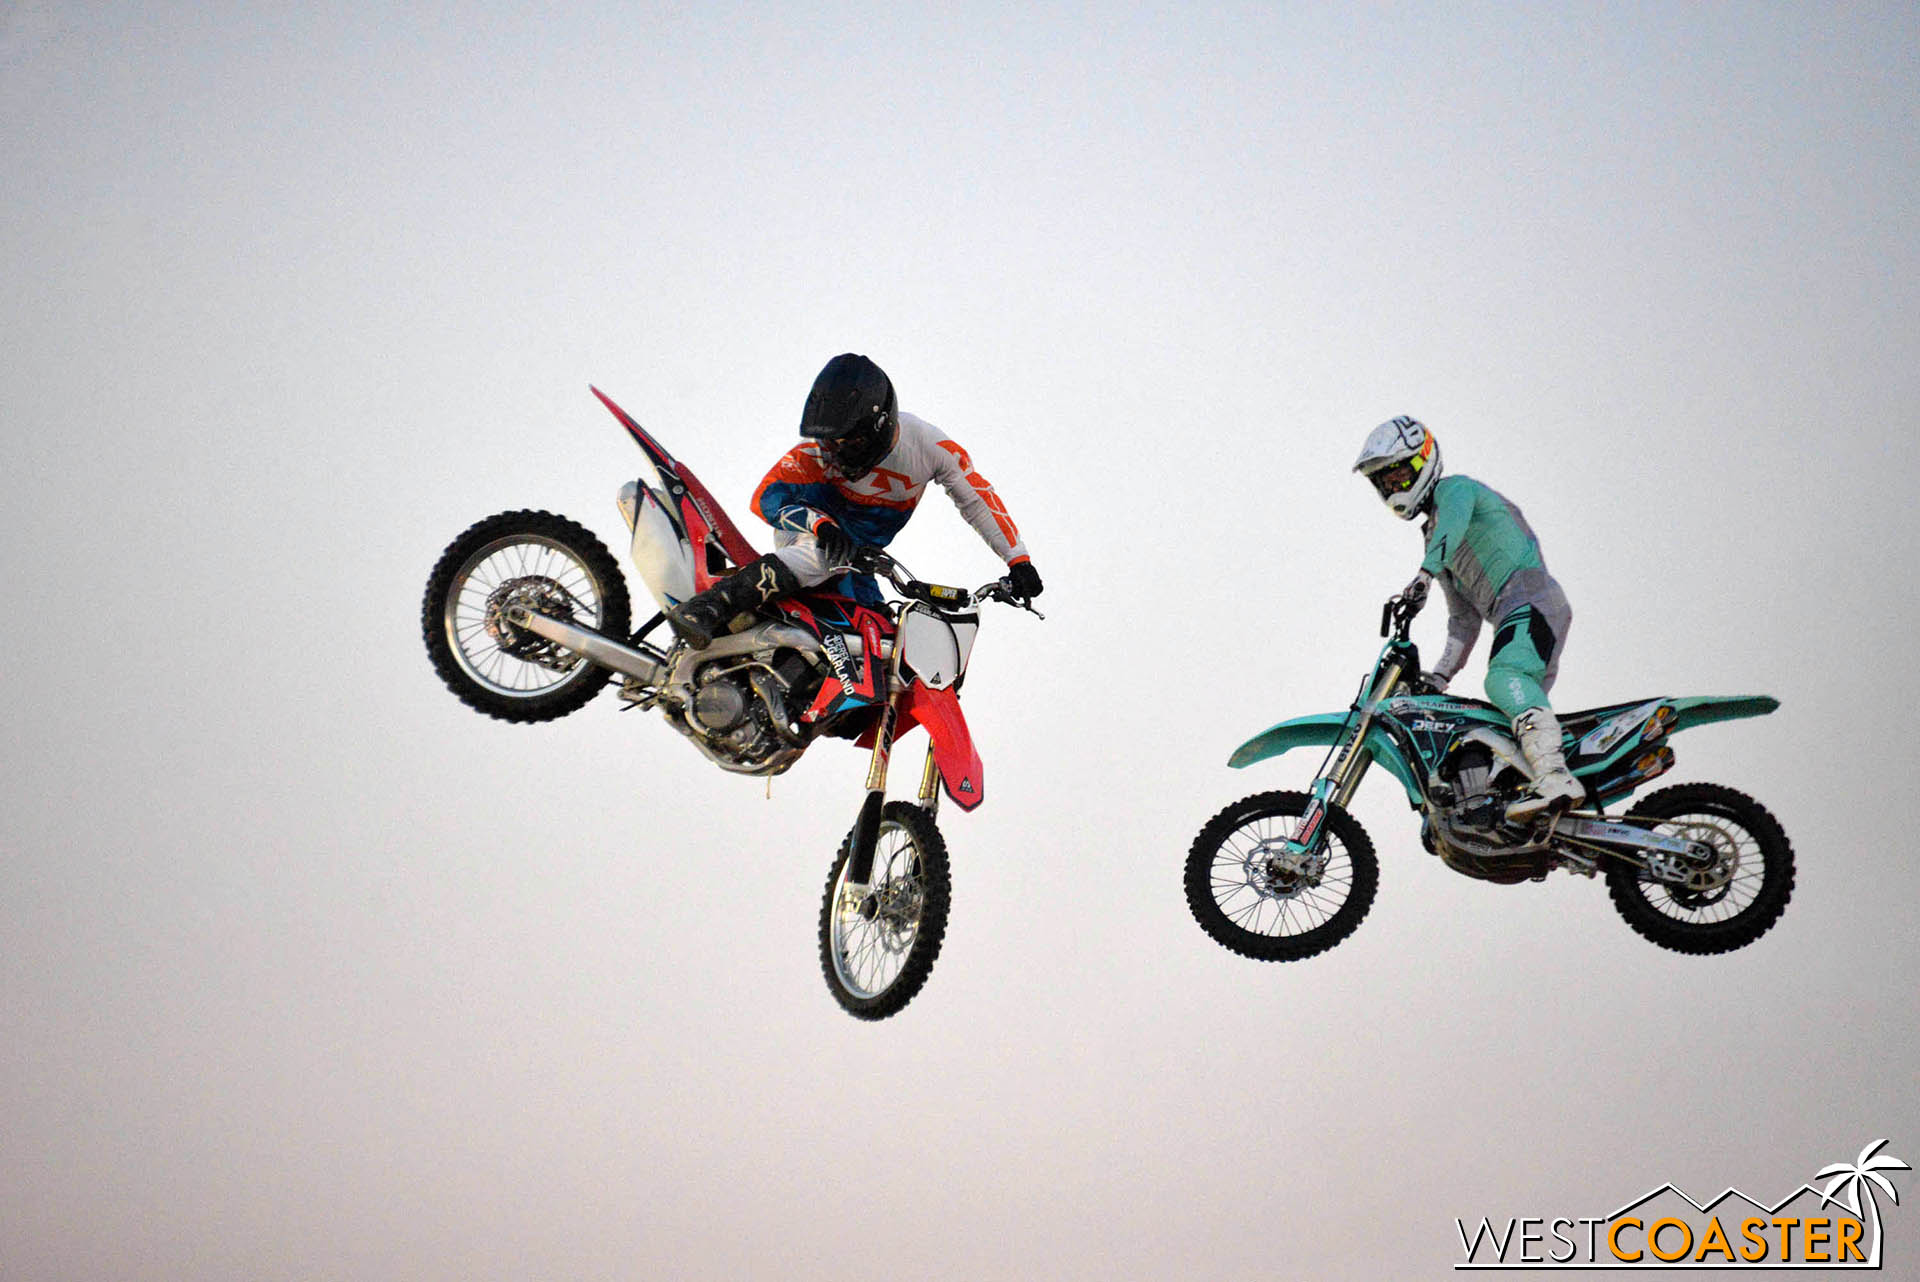 No problem for the incredible athletes performing with the Nitro Circus!